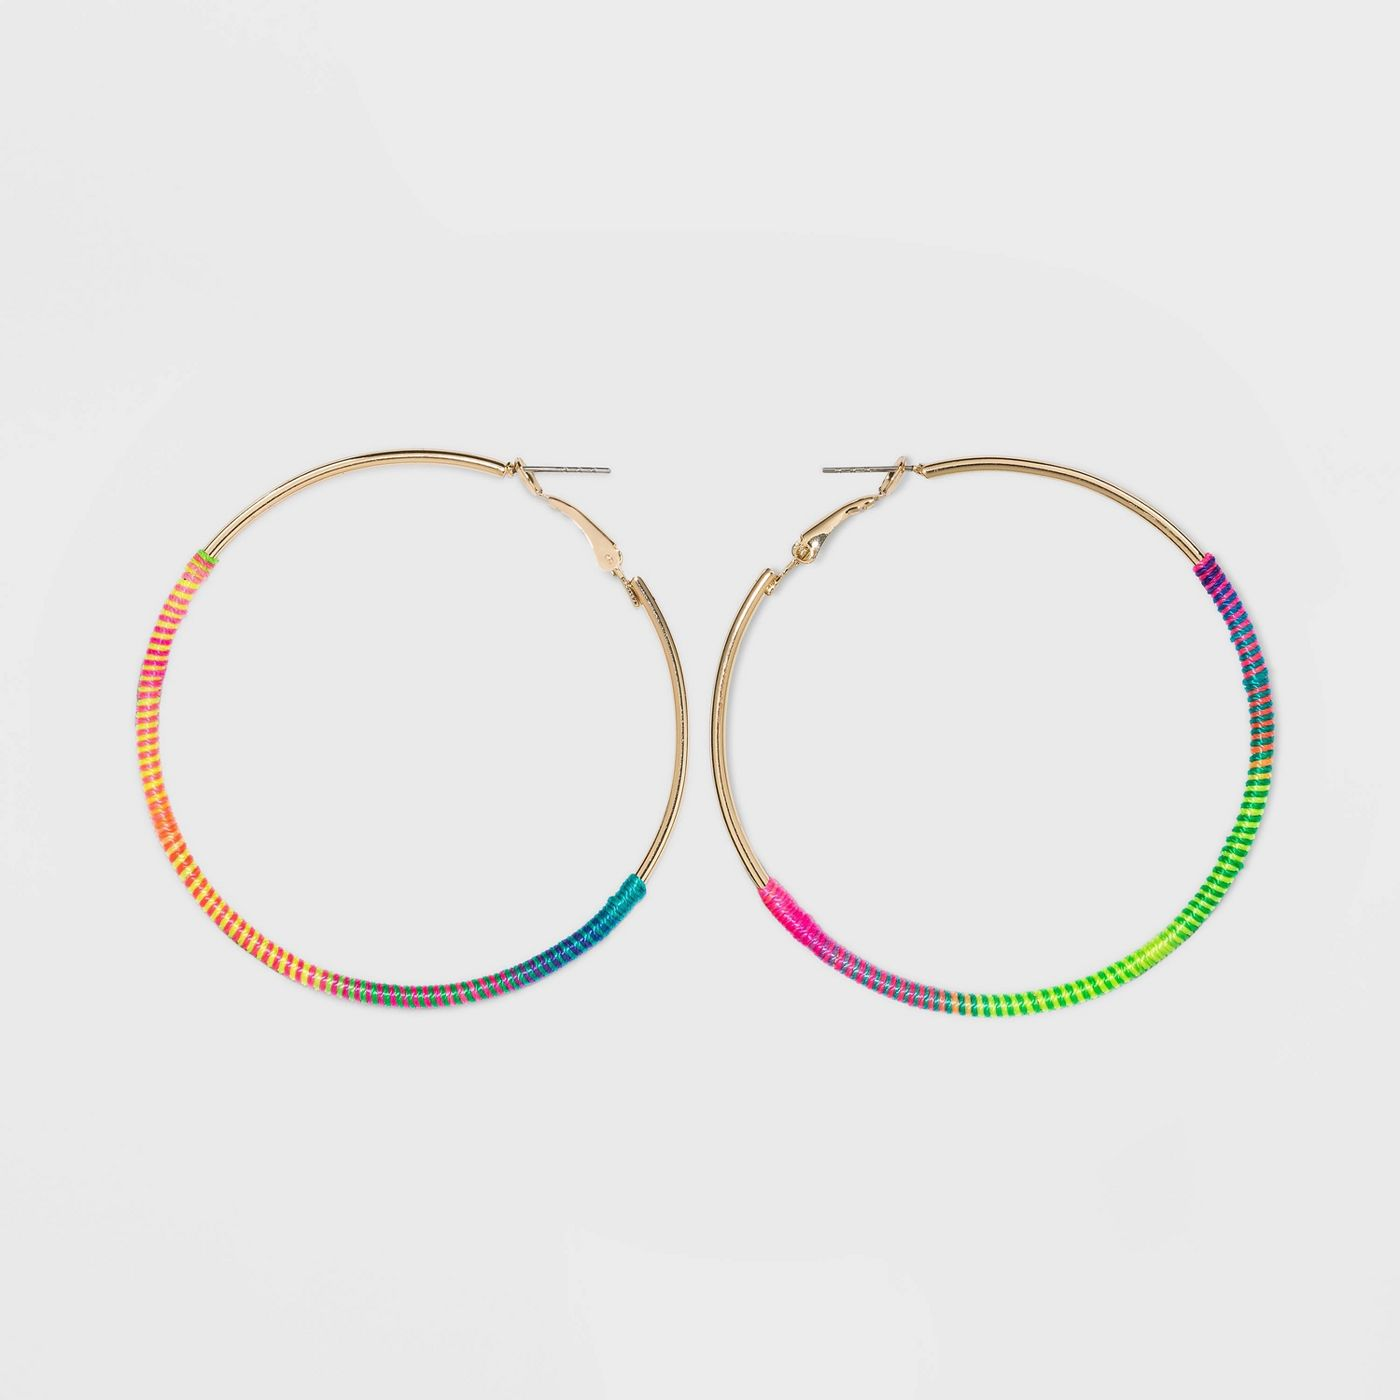 Shiny Gold with Thread Wrap Click Top Hoop Earrings - Wild Fable™ - image 1 of 4